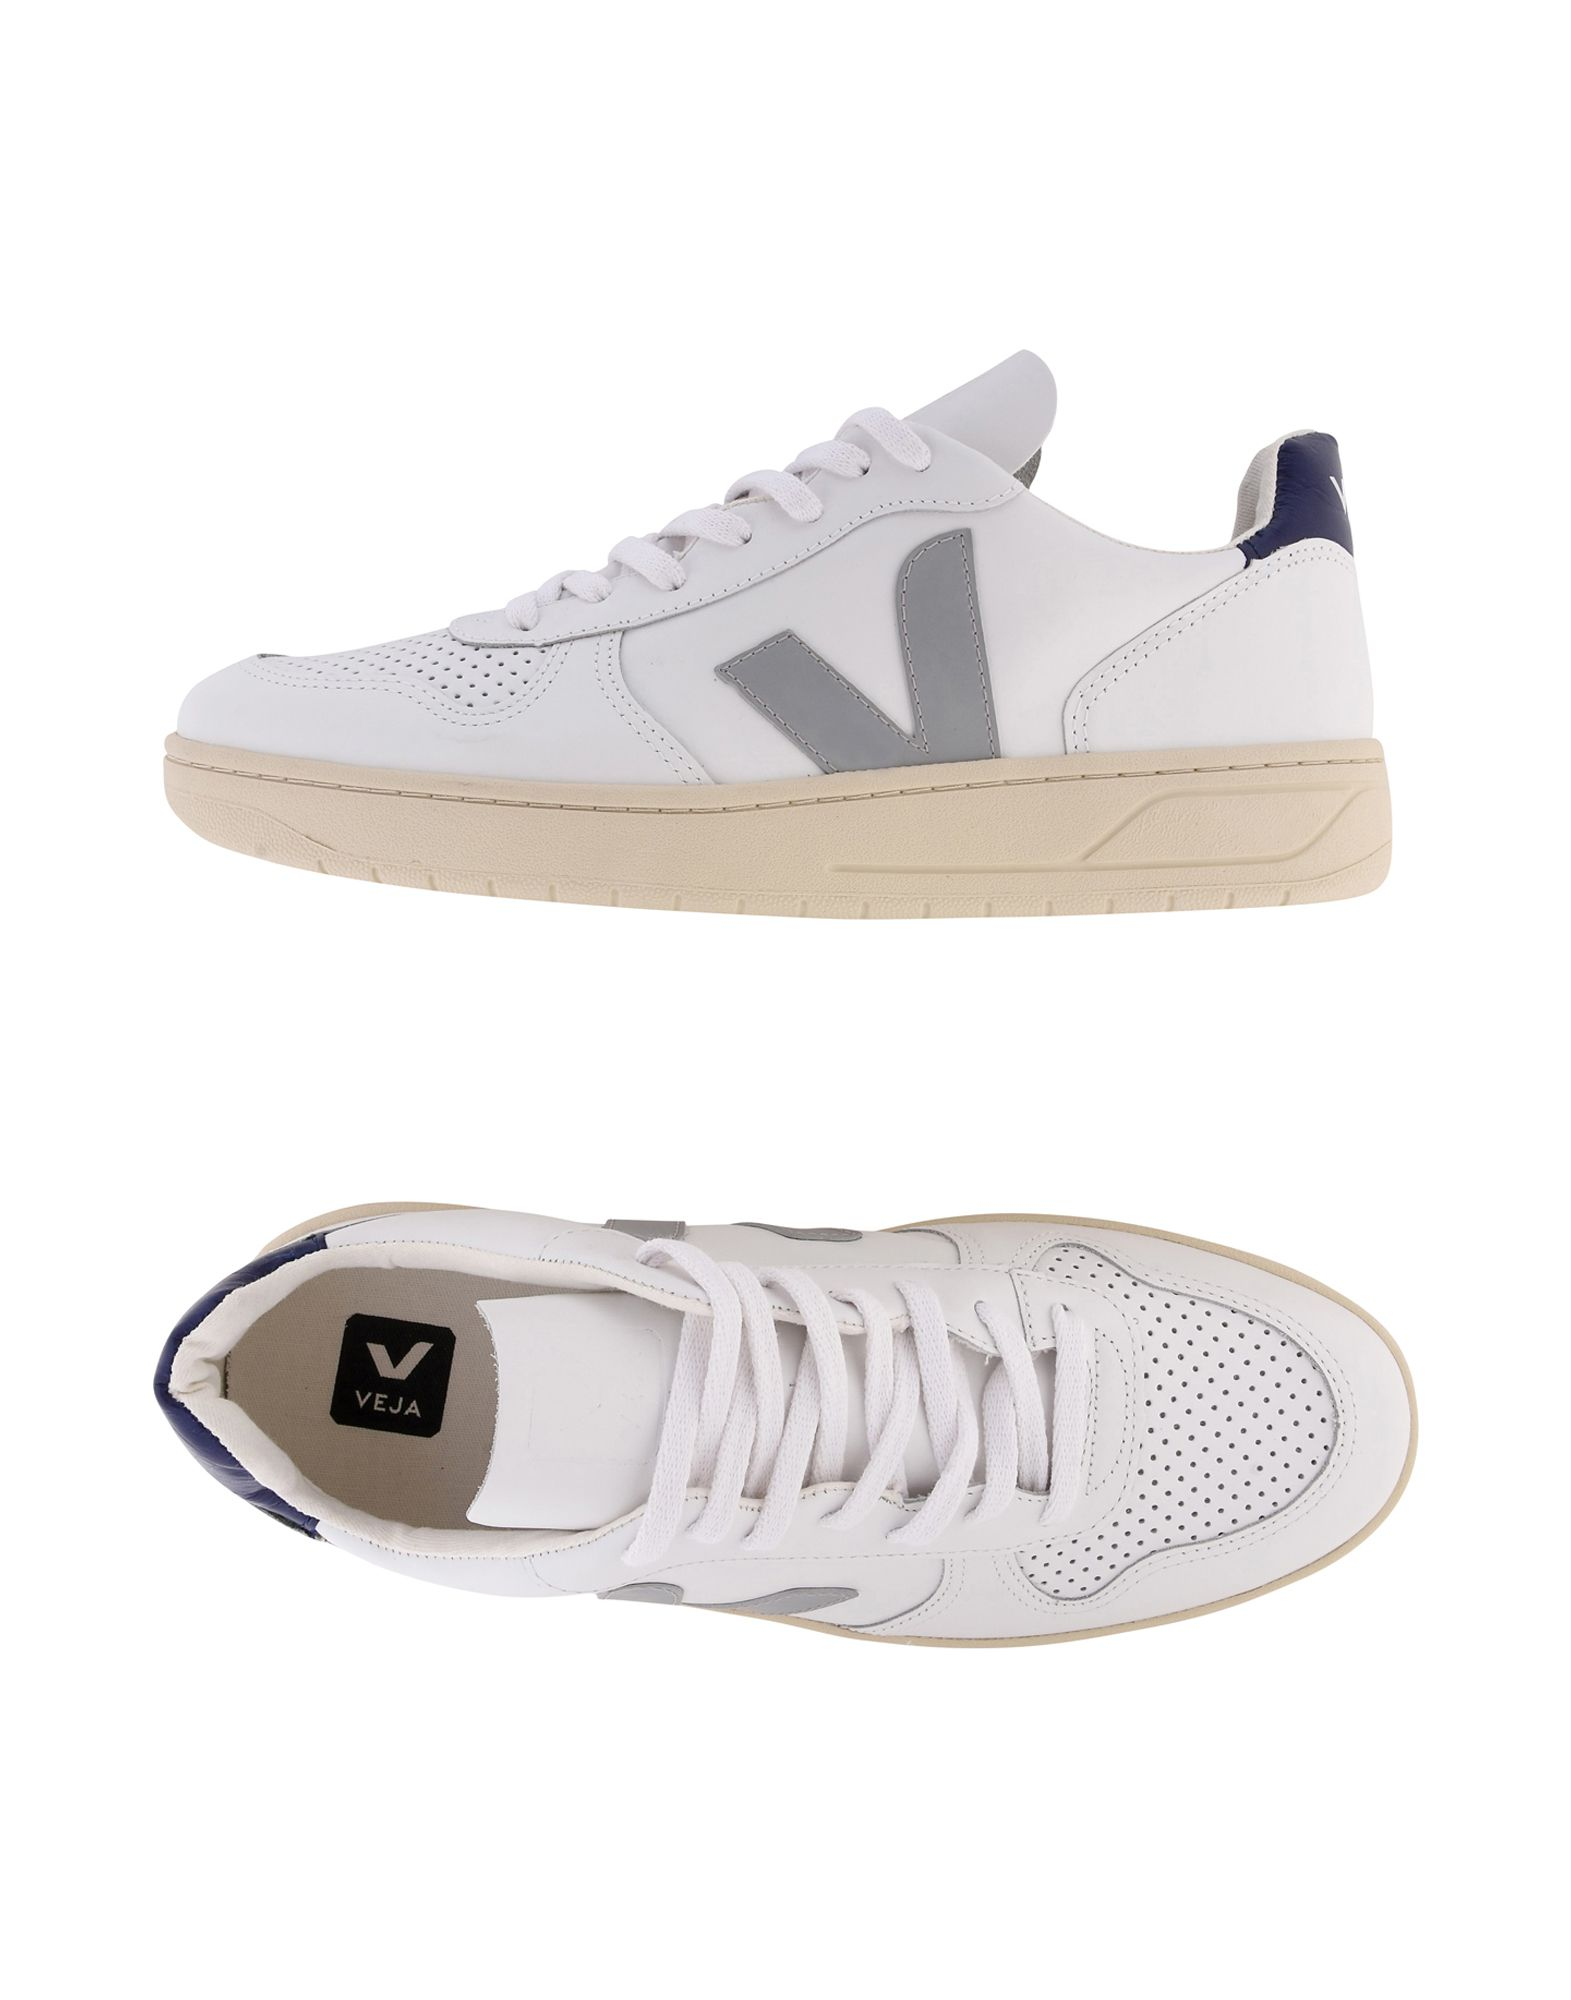 Veja Sneakers Shop At Ebates